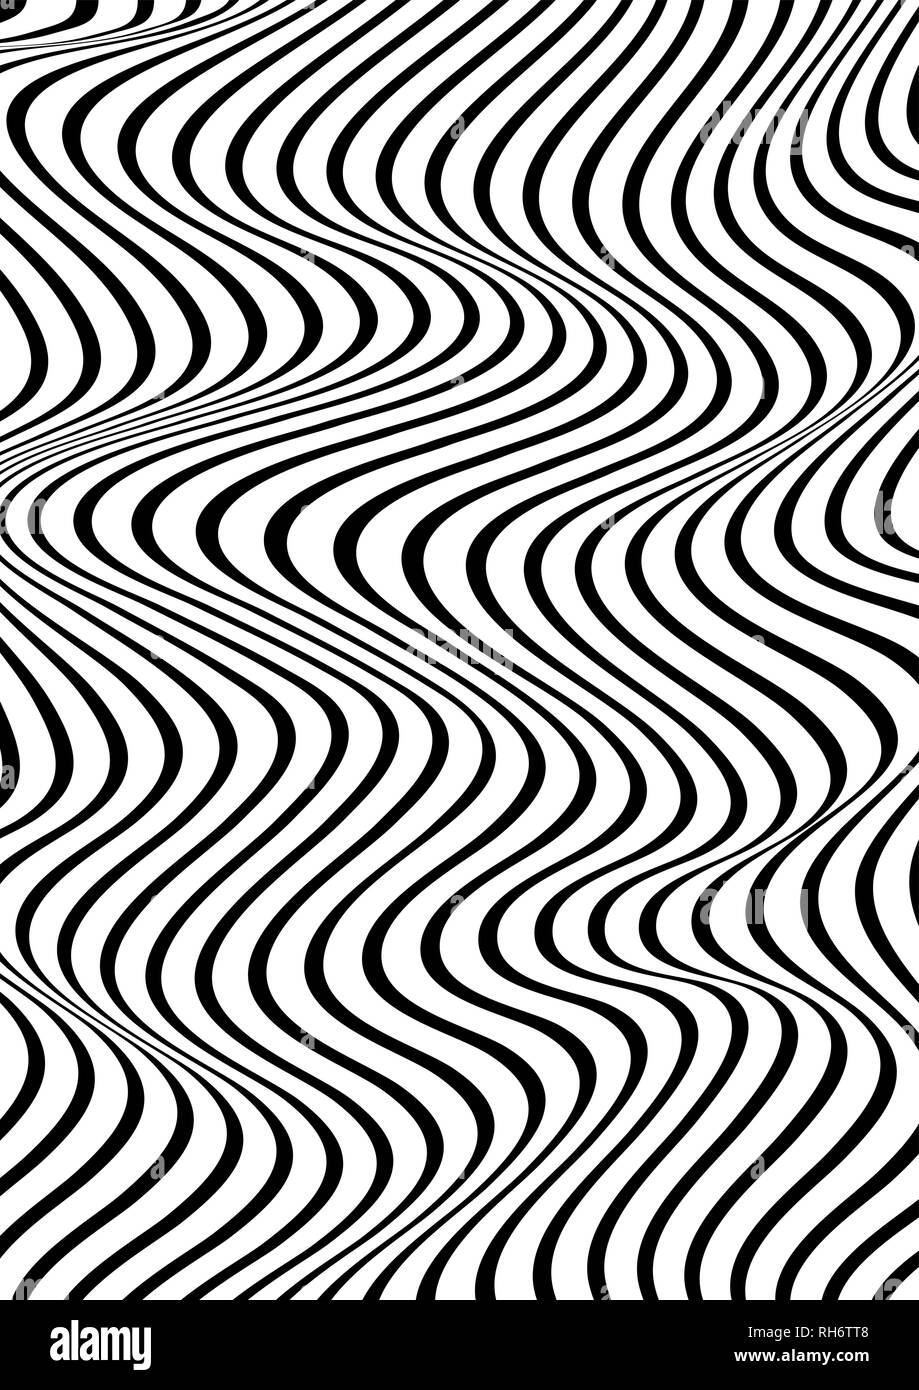 Abstract vertical wavy geometric pattern. Vector texture with black and white waves, stripes. Dynamical 3D effect, illusion of movement. - Stock Vector